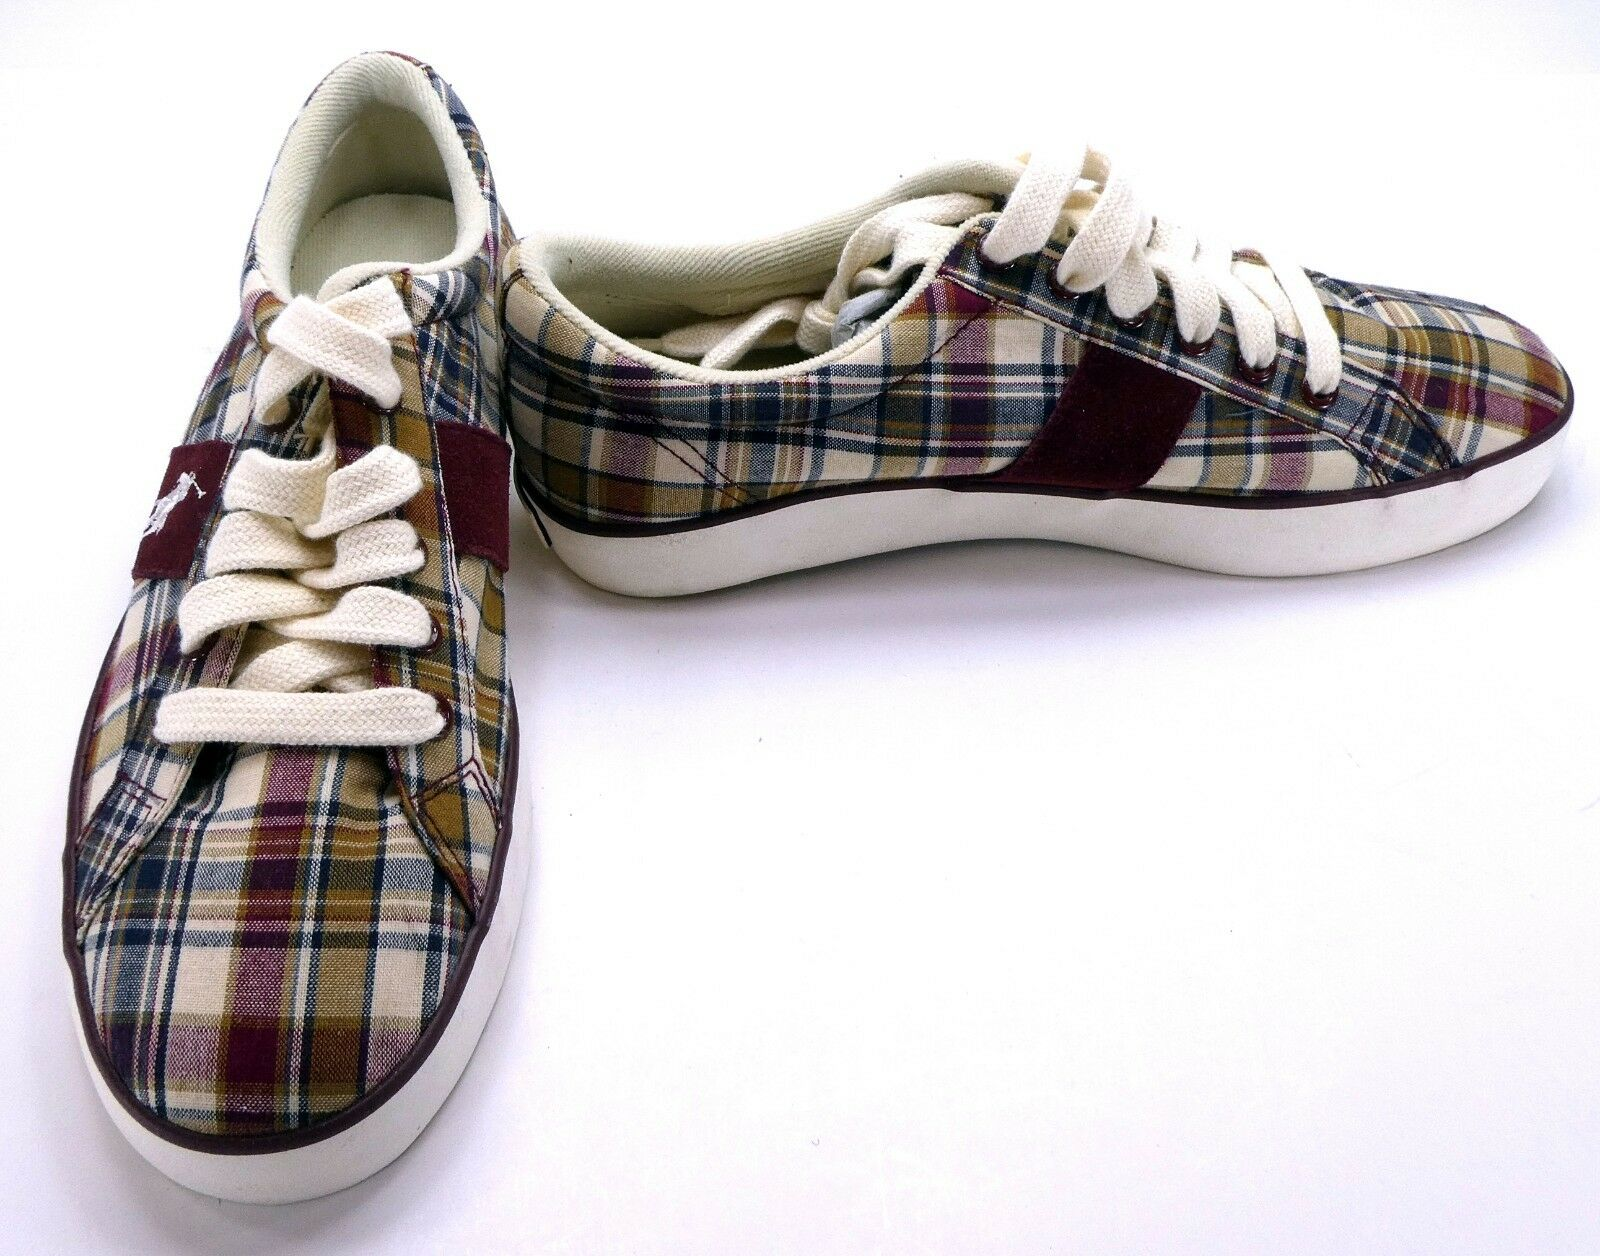 Polo Ralph Lauren shoes Harold Canvas Plaid Red Cream Sneakers Size 7.5